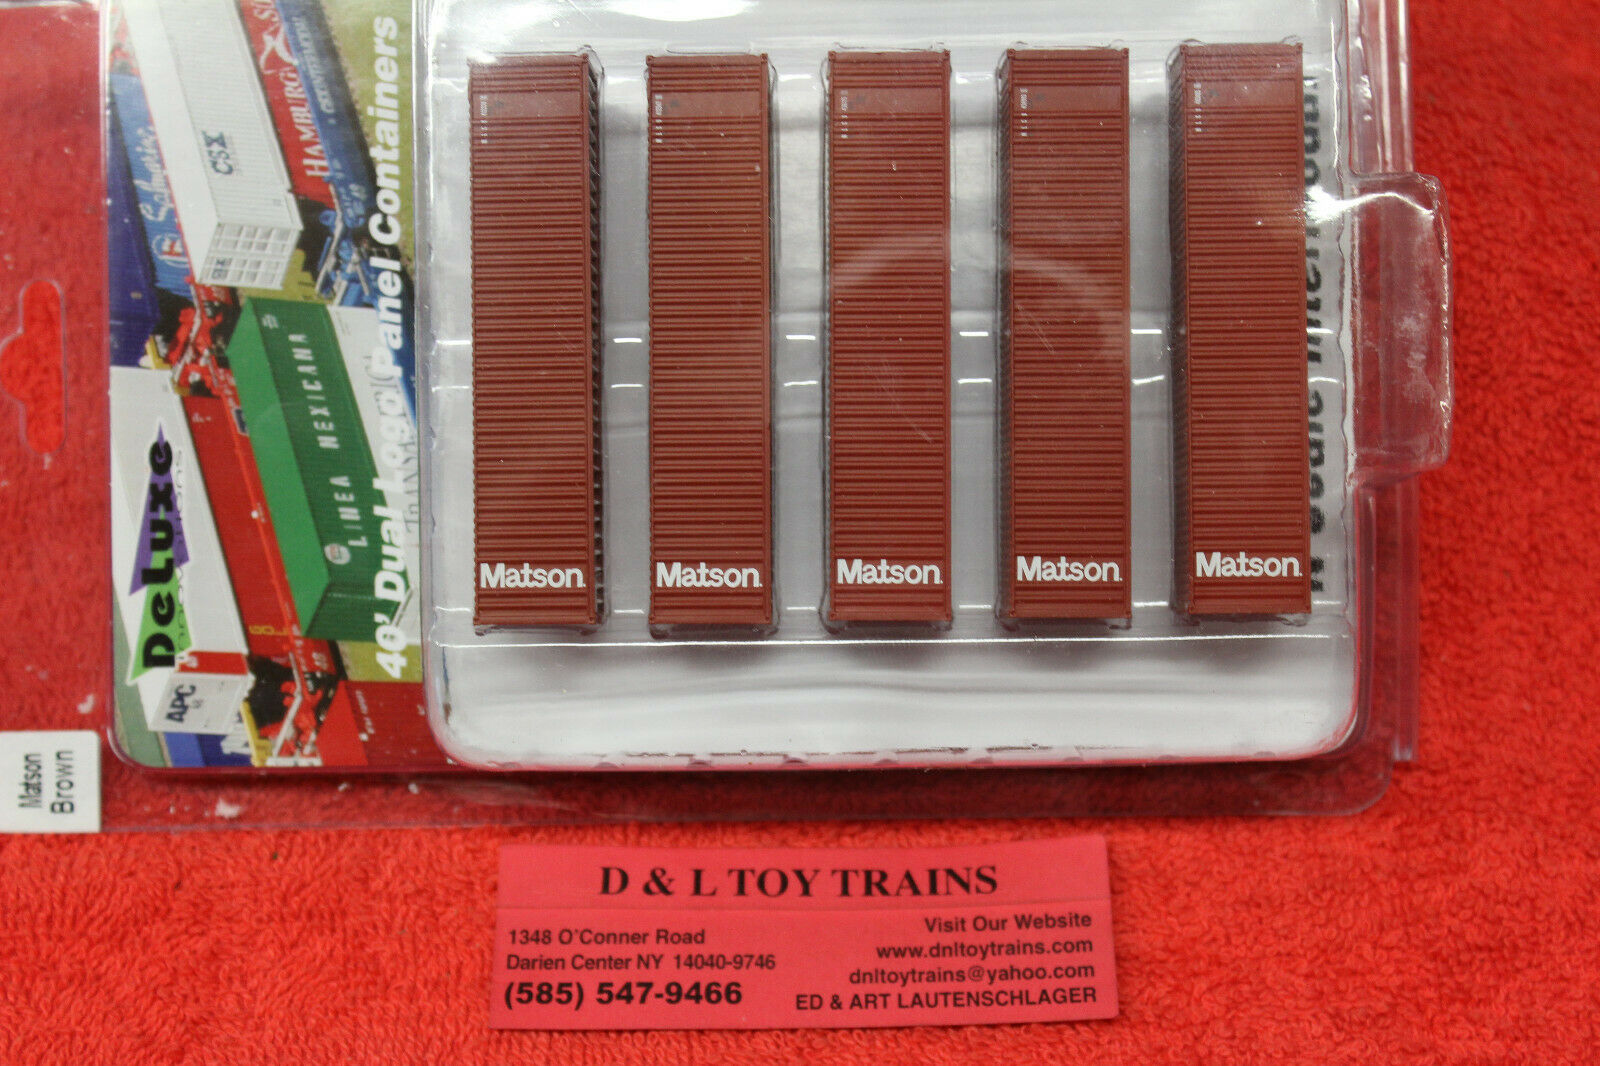 505081 Matson 40' Rib Side Container Set Brand New